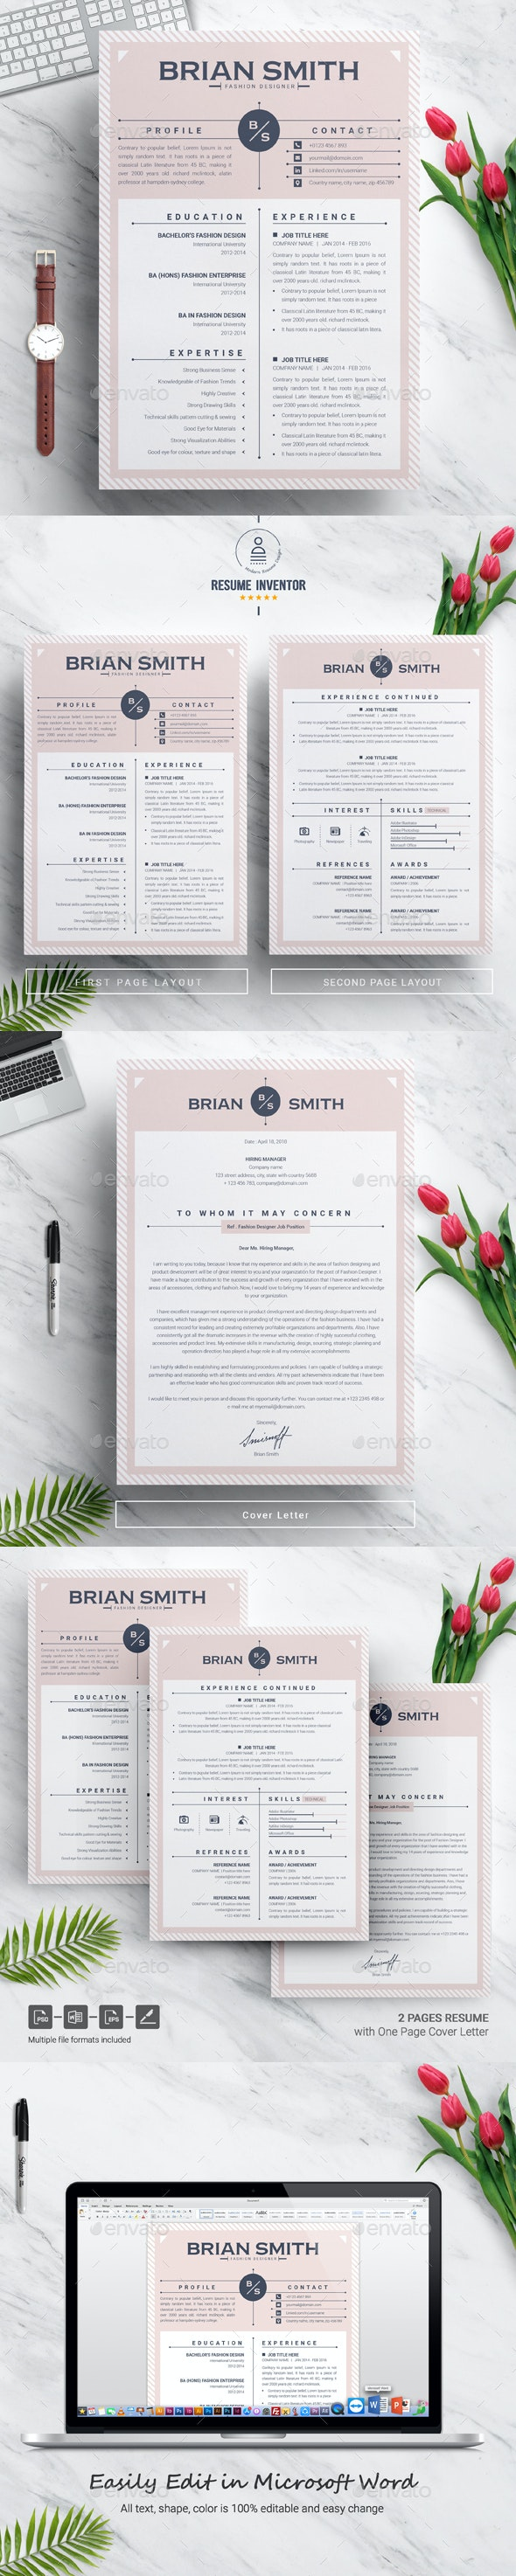 Resume Template | Modern & Creative Professional Resume Template for Word - Resumes Stationery